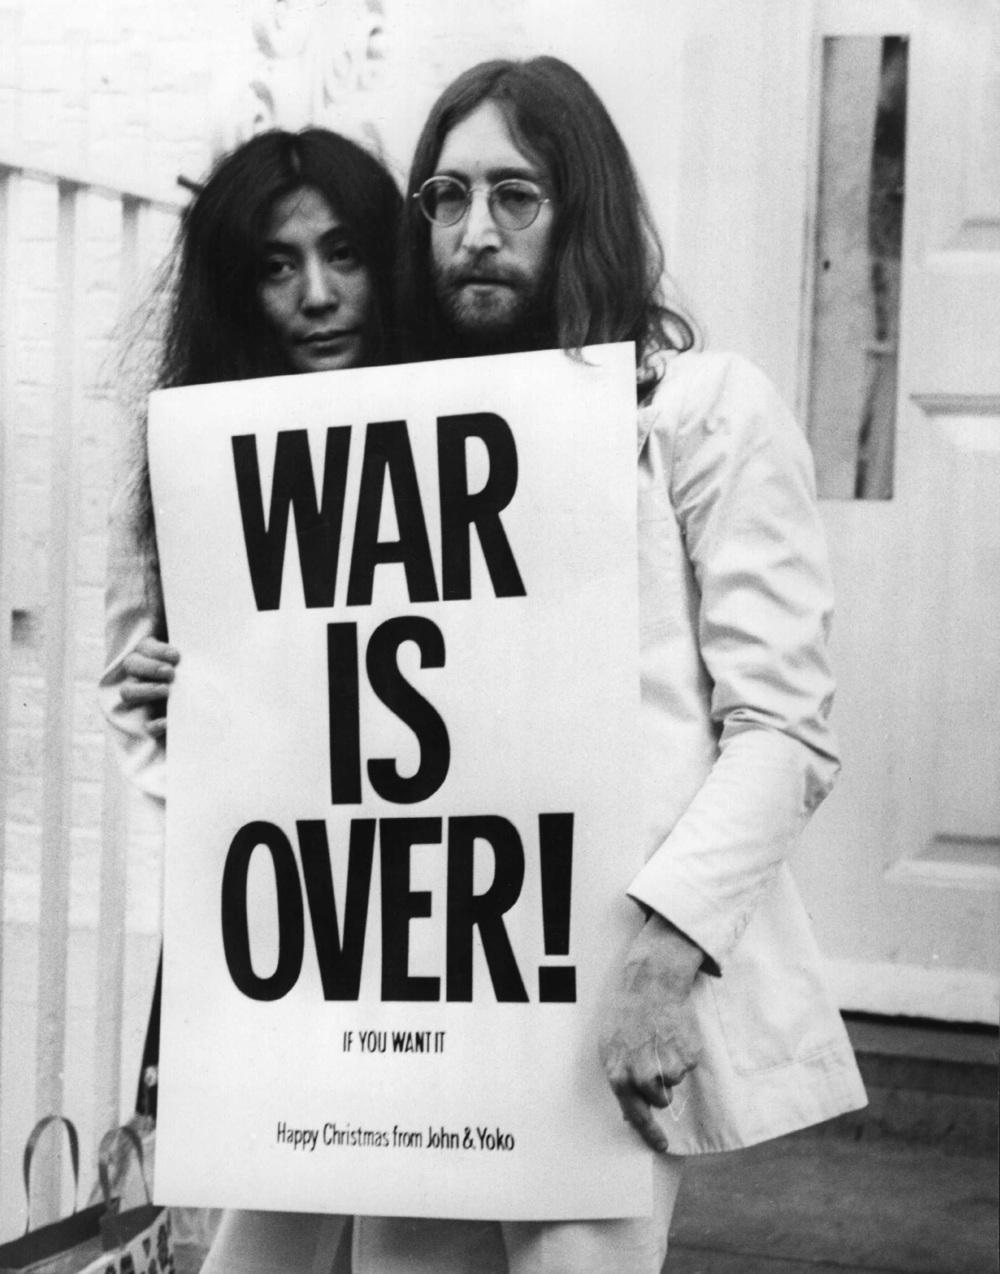 John Lennon and Yoko Ono holding their War Is Over peace message, 1969.